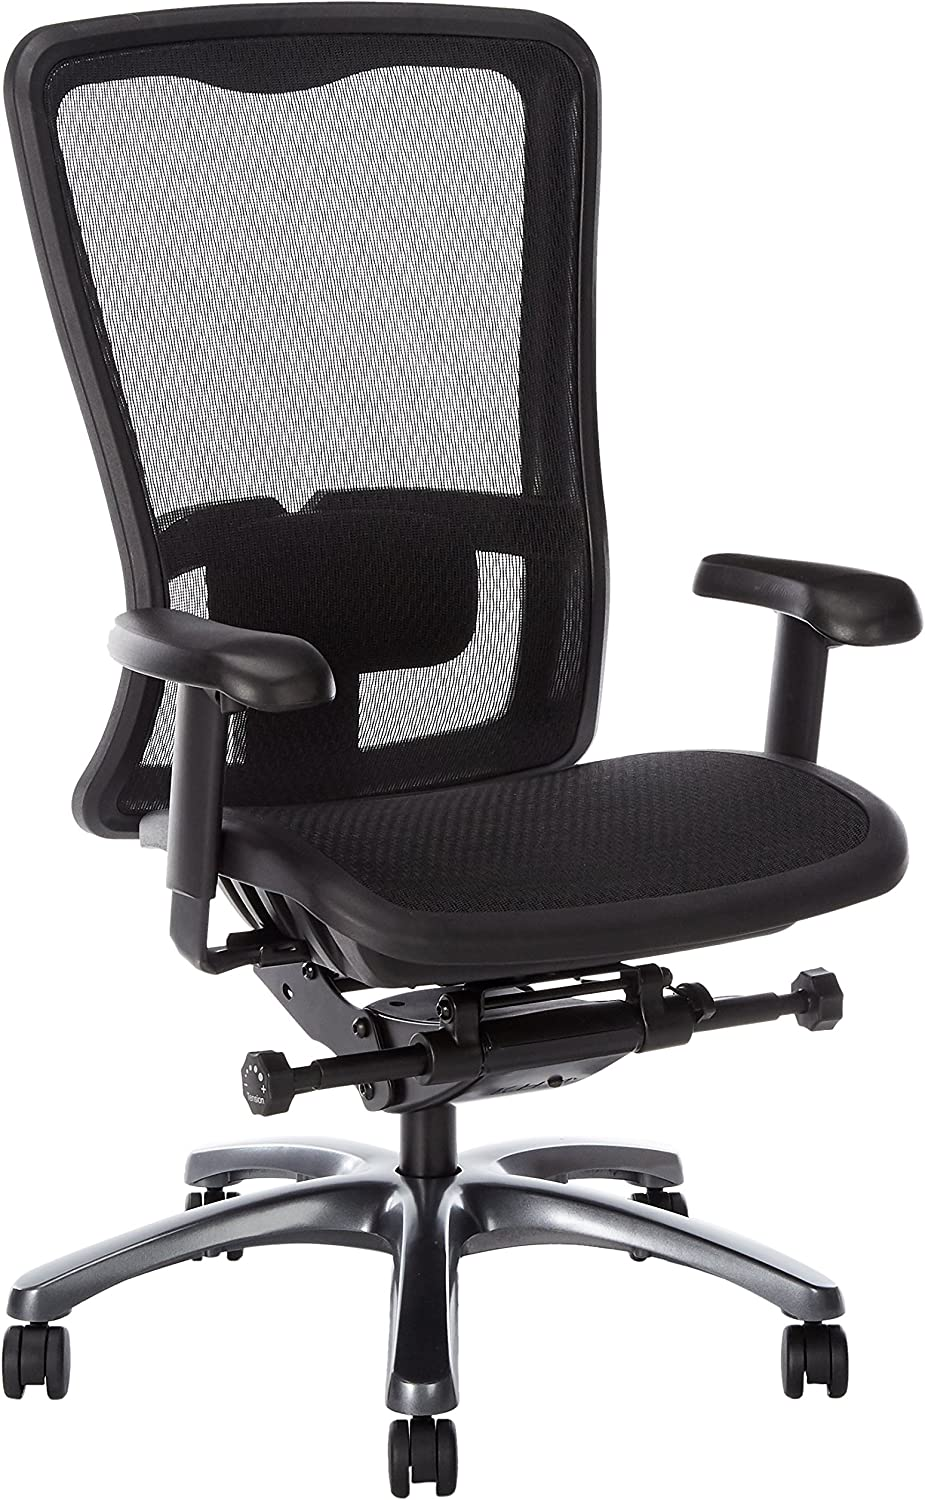 - What Are The Best Office Chair For Lower Back Pain Under $300 - ChairPicks